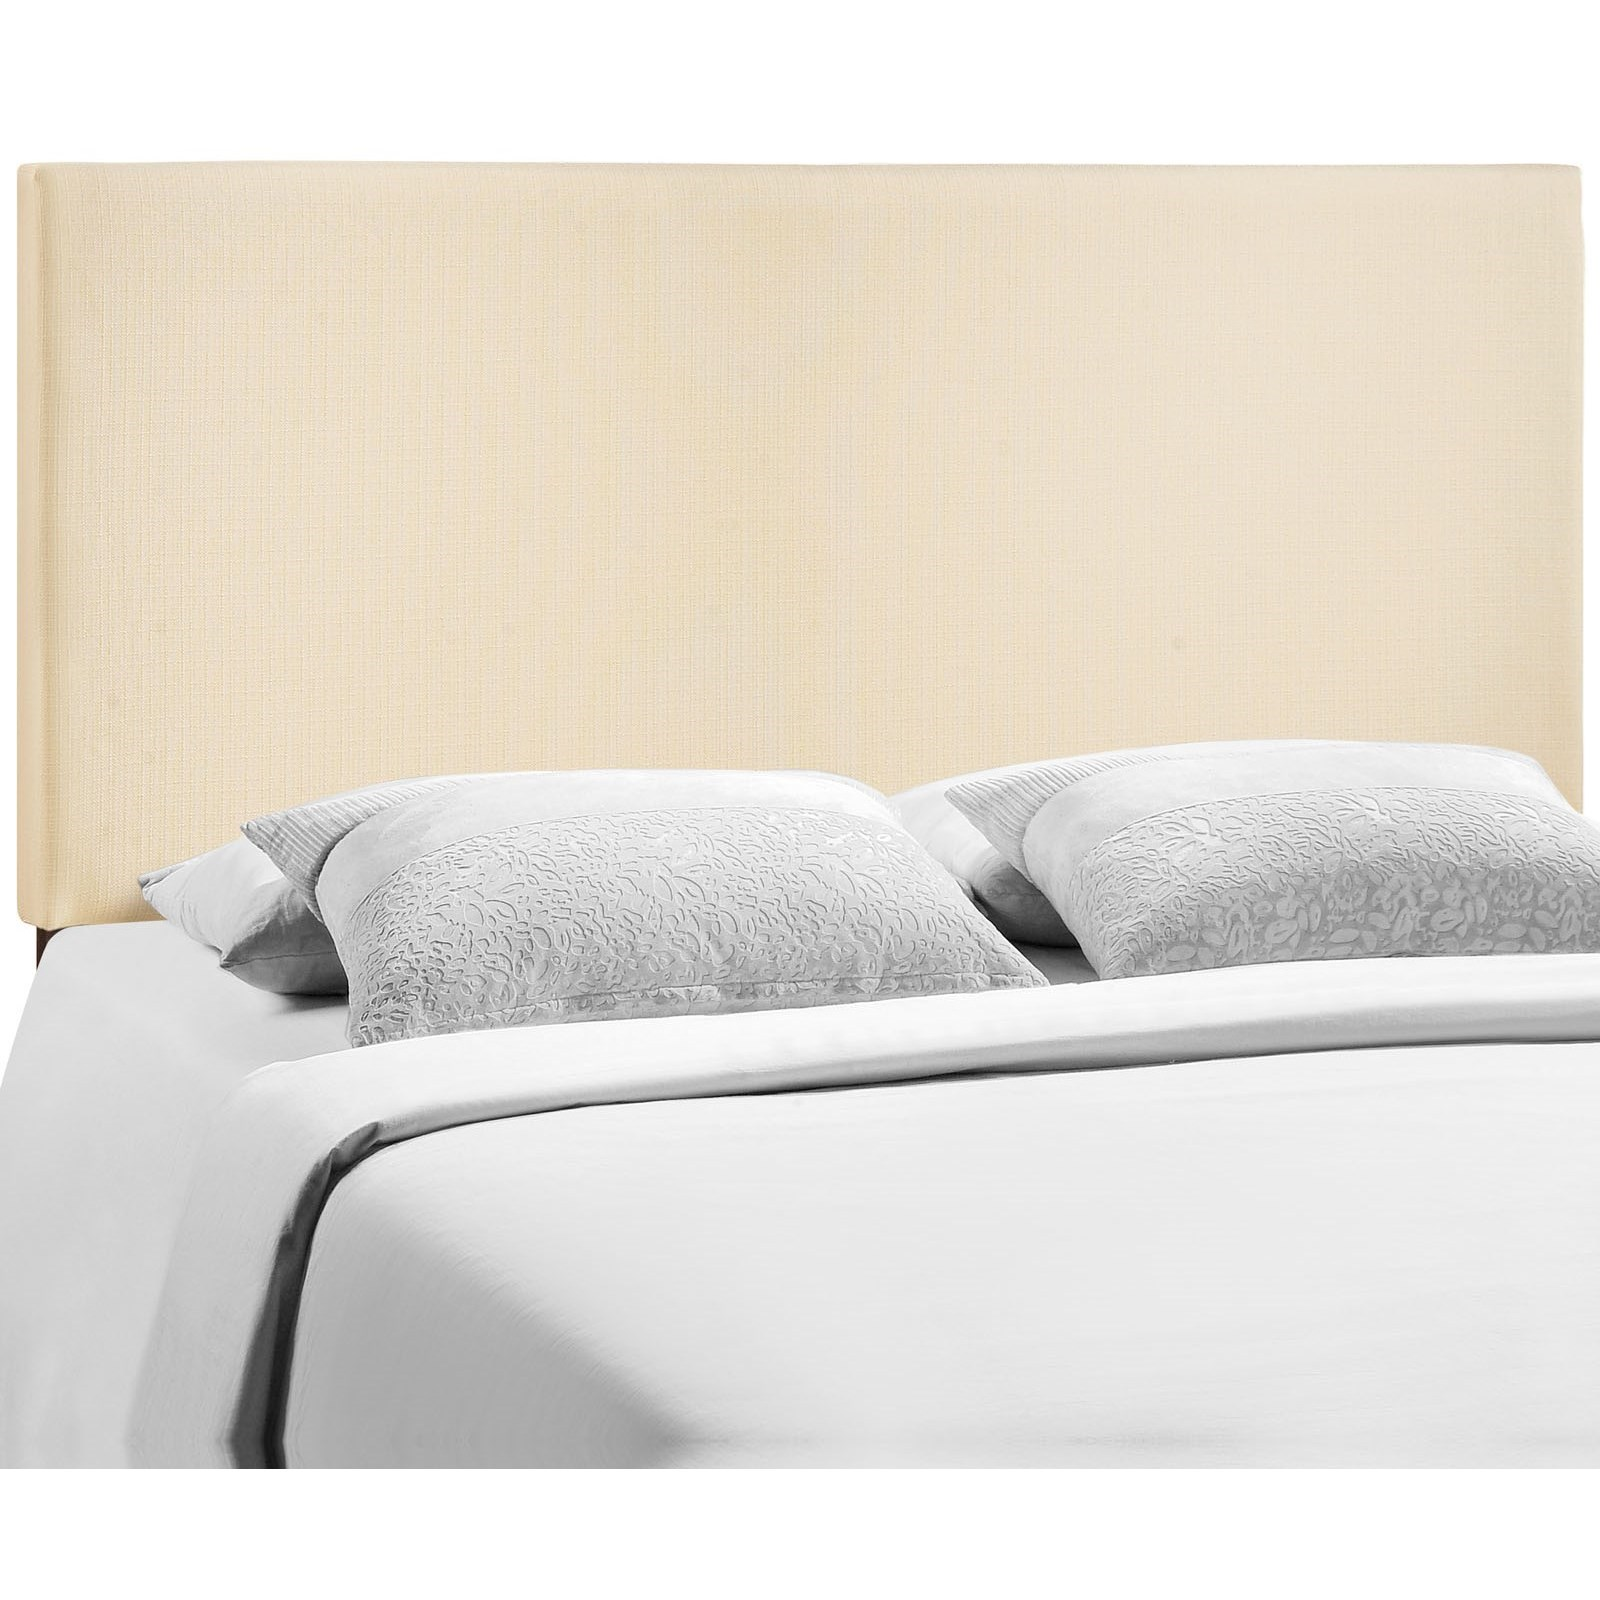 Region Queen Upholstered Headboard by Modway at Value City Furniture